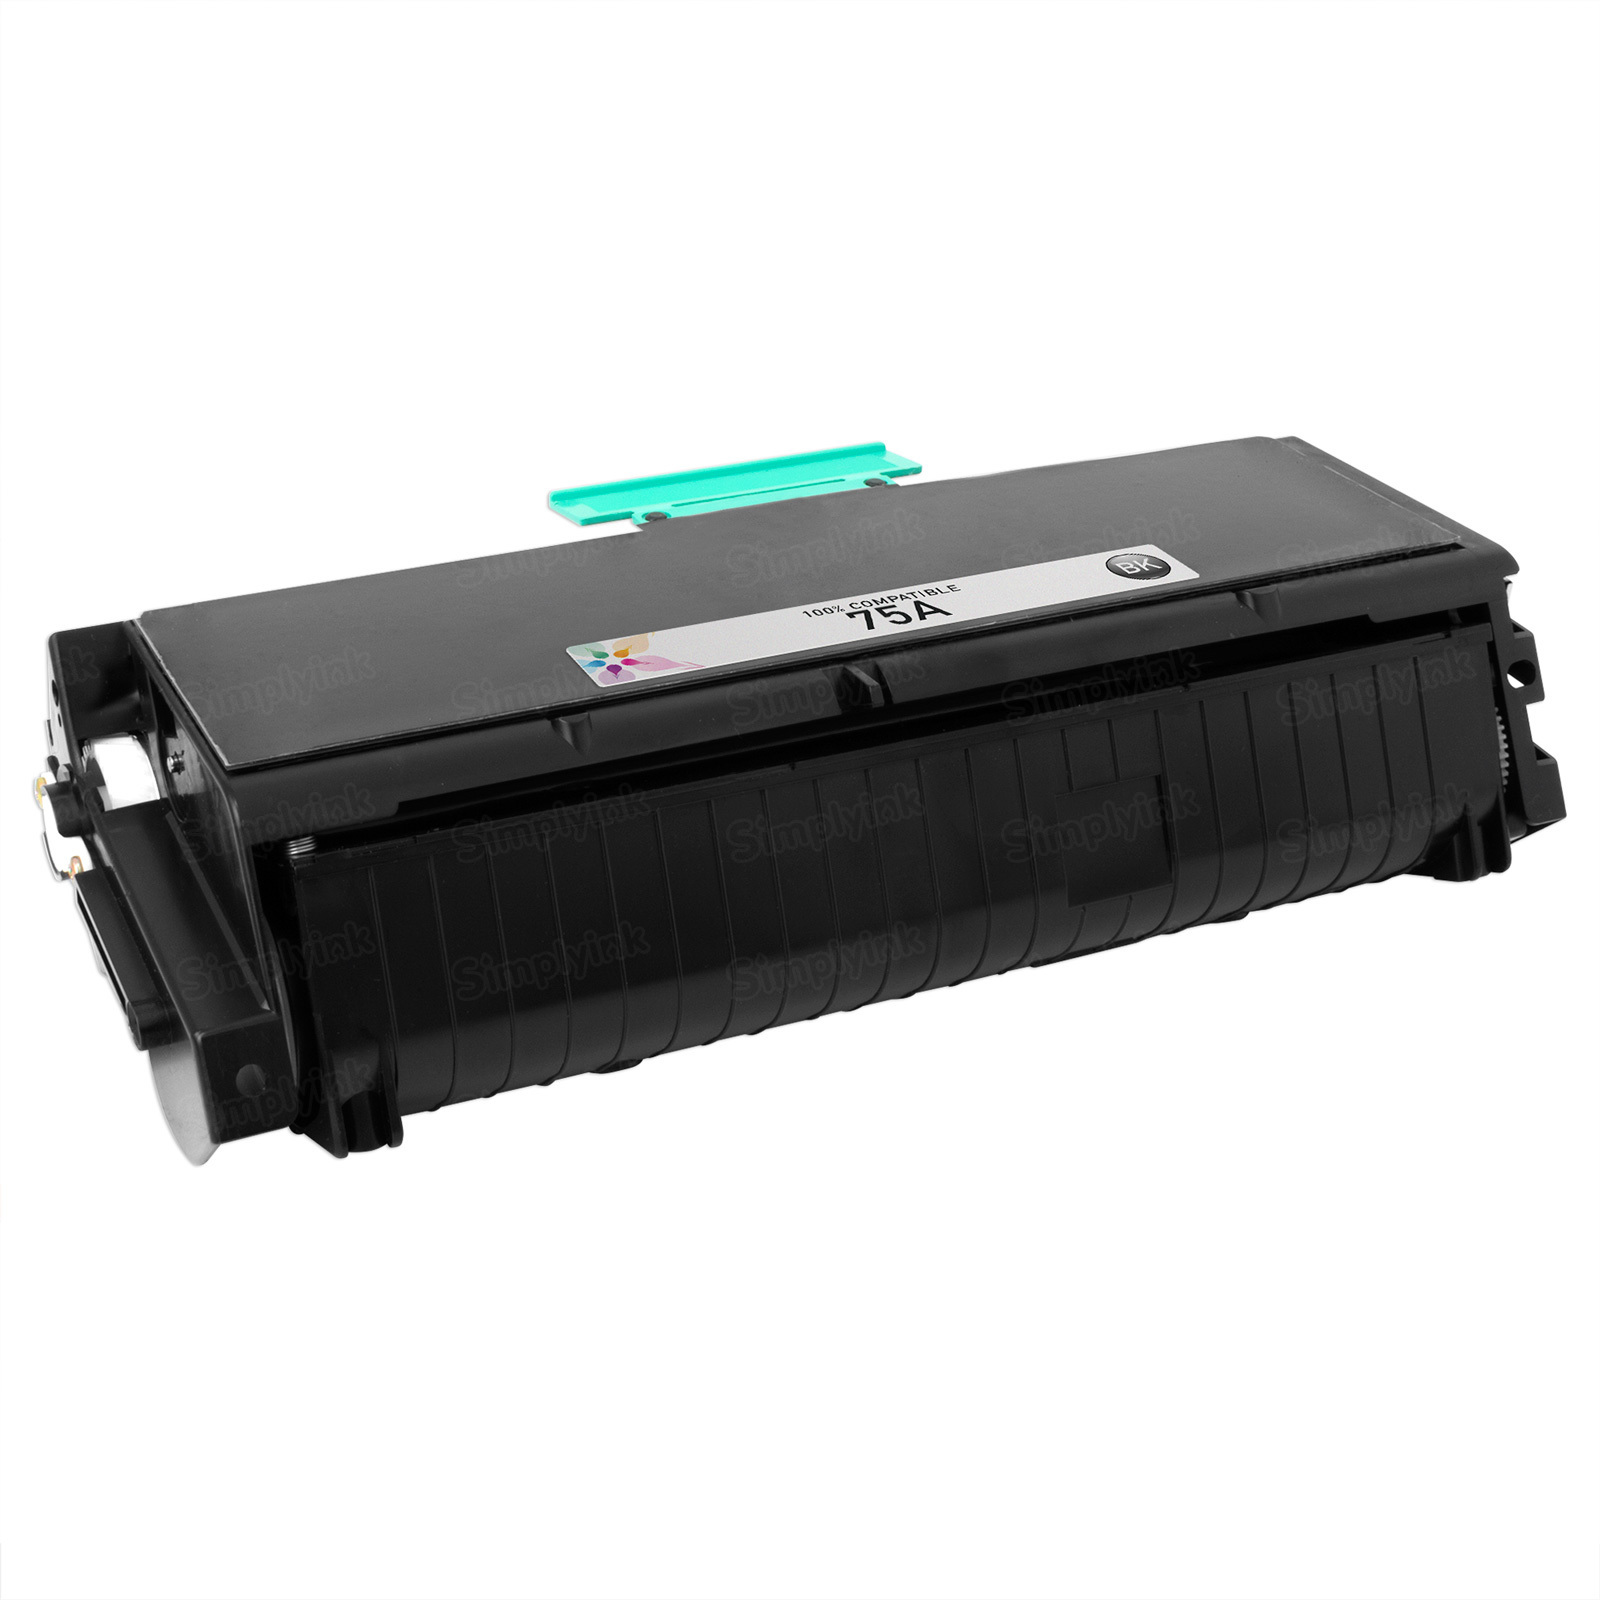 Remanufactured Replacement Black Laser Toner for HP 75A